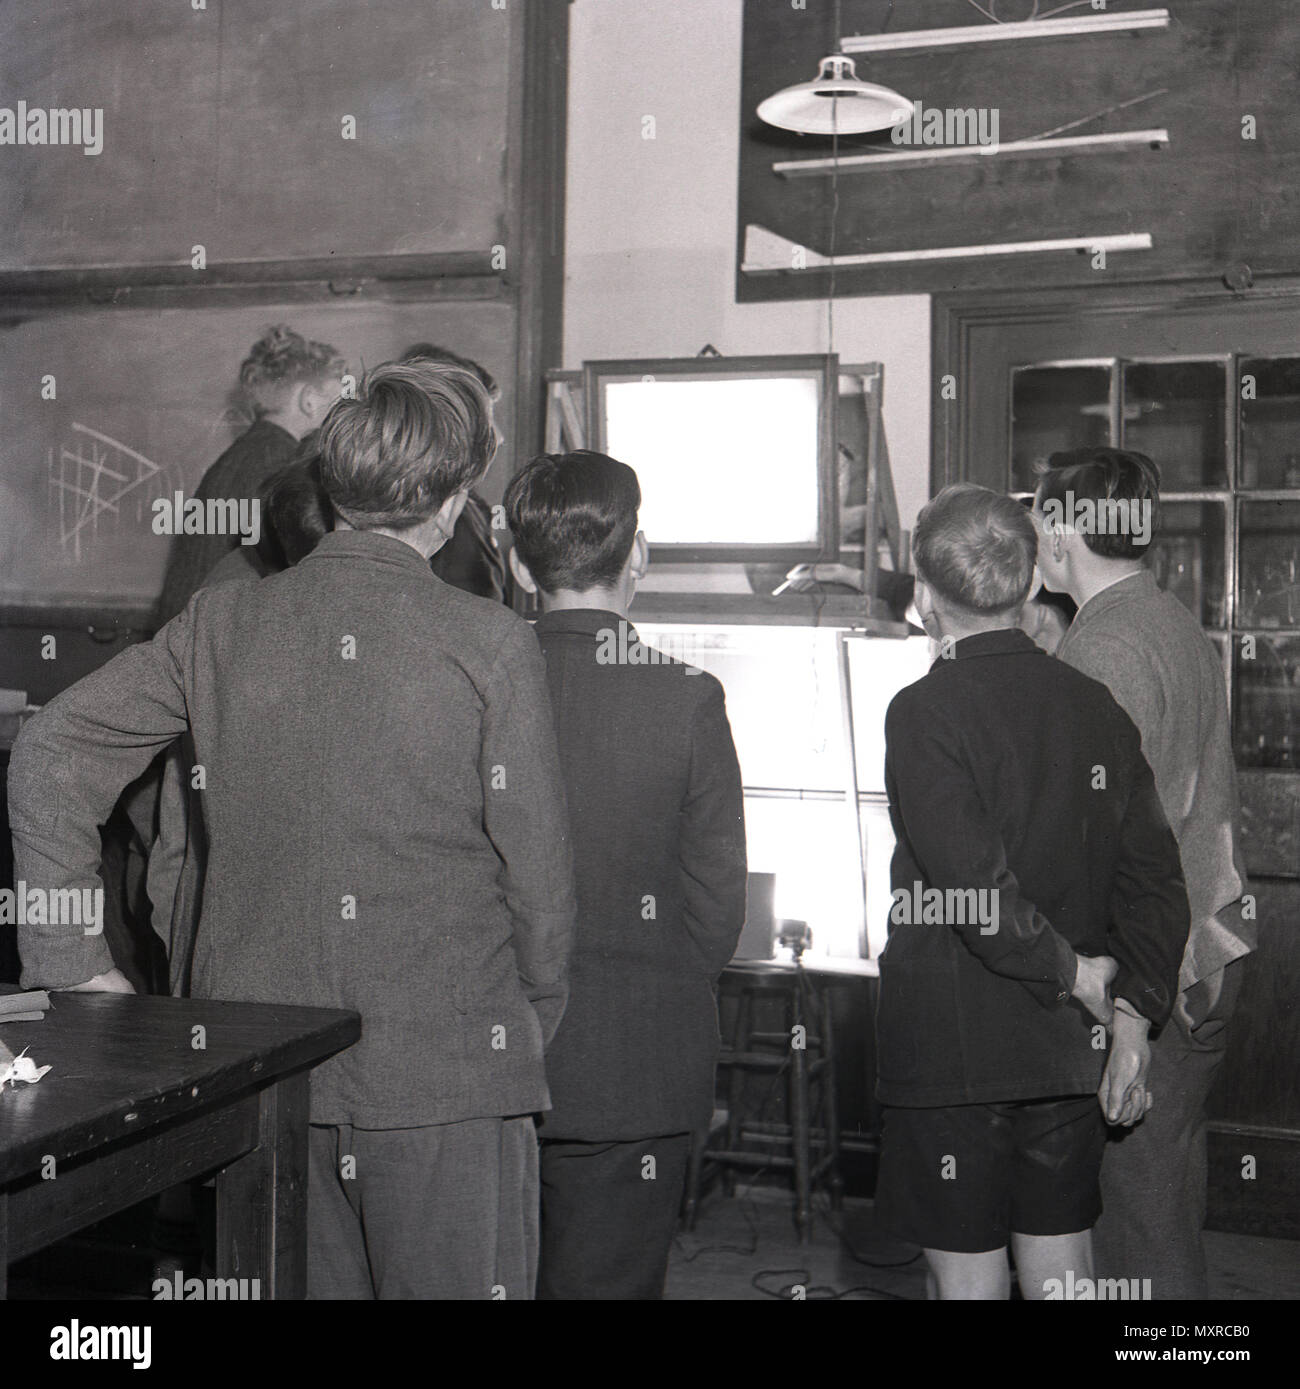 1948, historical, schoolboys gather around a lightbox during a class at Sidcup secondary modern school, Kent, England, UK. These offered education to children from 11-15 to those who did not pass the 11+ exam for entry to Grammar schools. - Stock Image